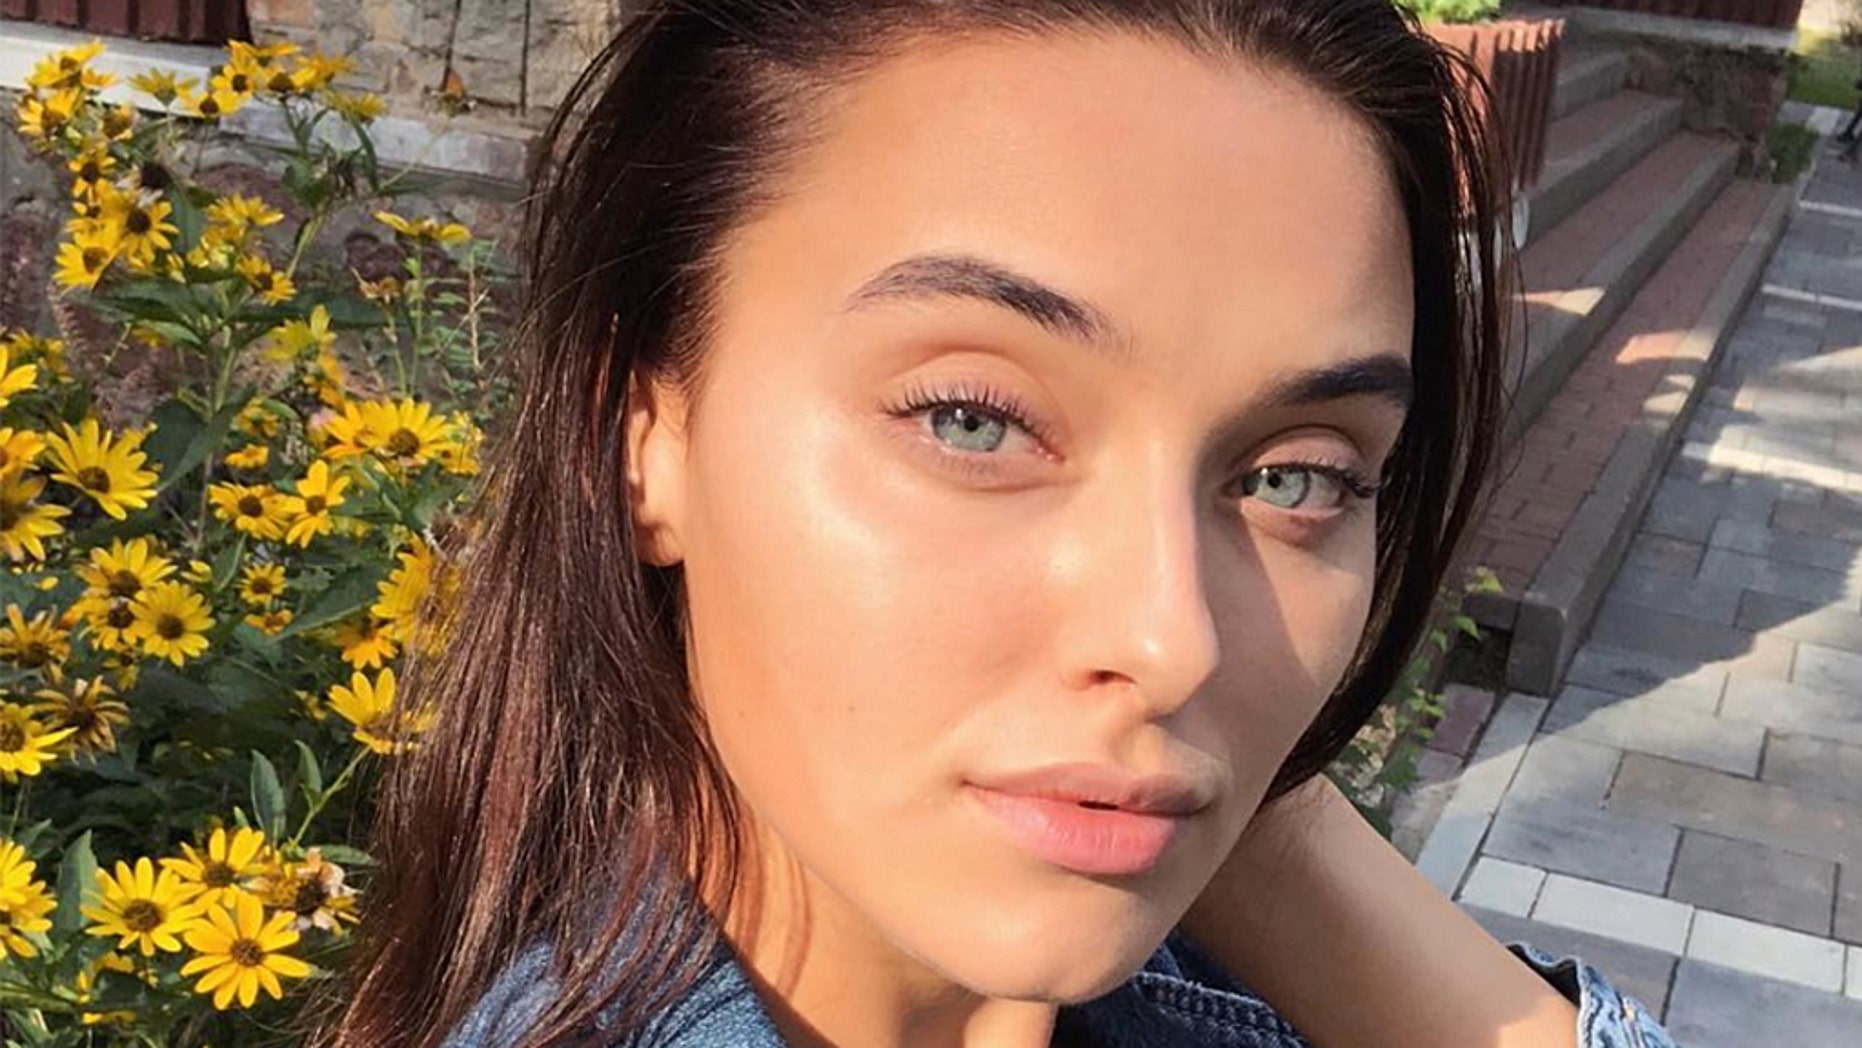 Veronika Didusenko, who was named Miss Ukraine, was recently stripped of her title after officials discovered she lied about being a divorced mother.